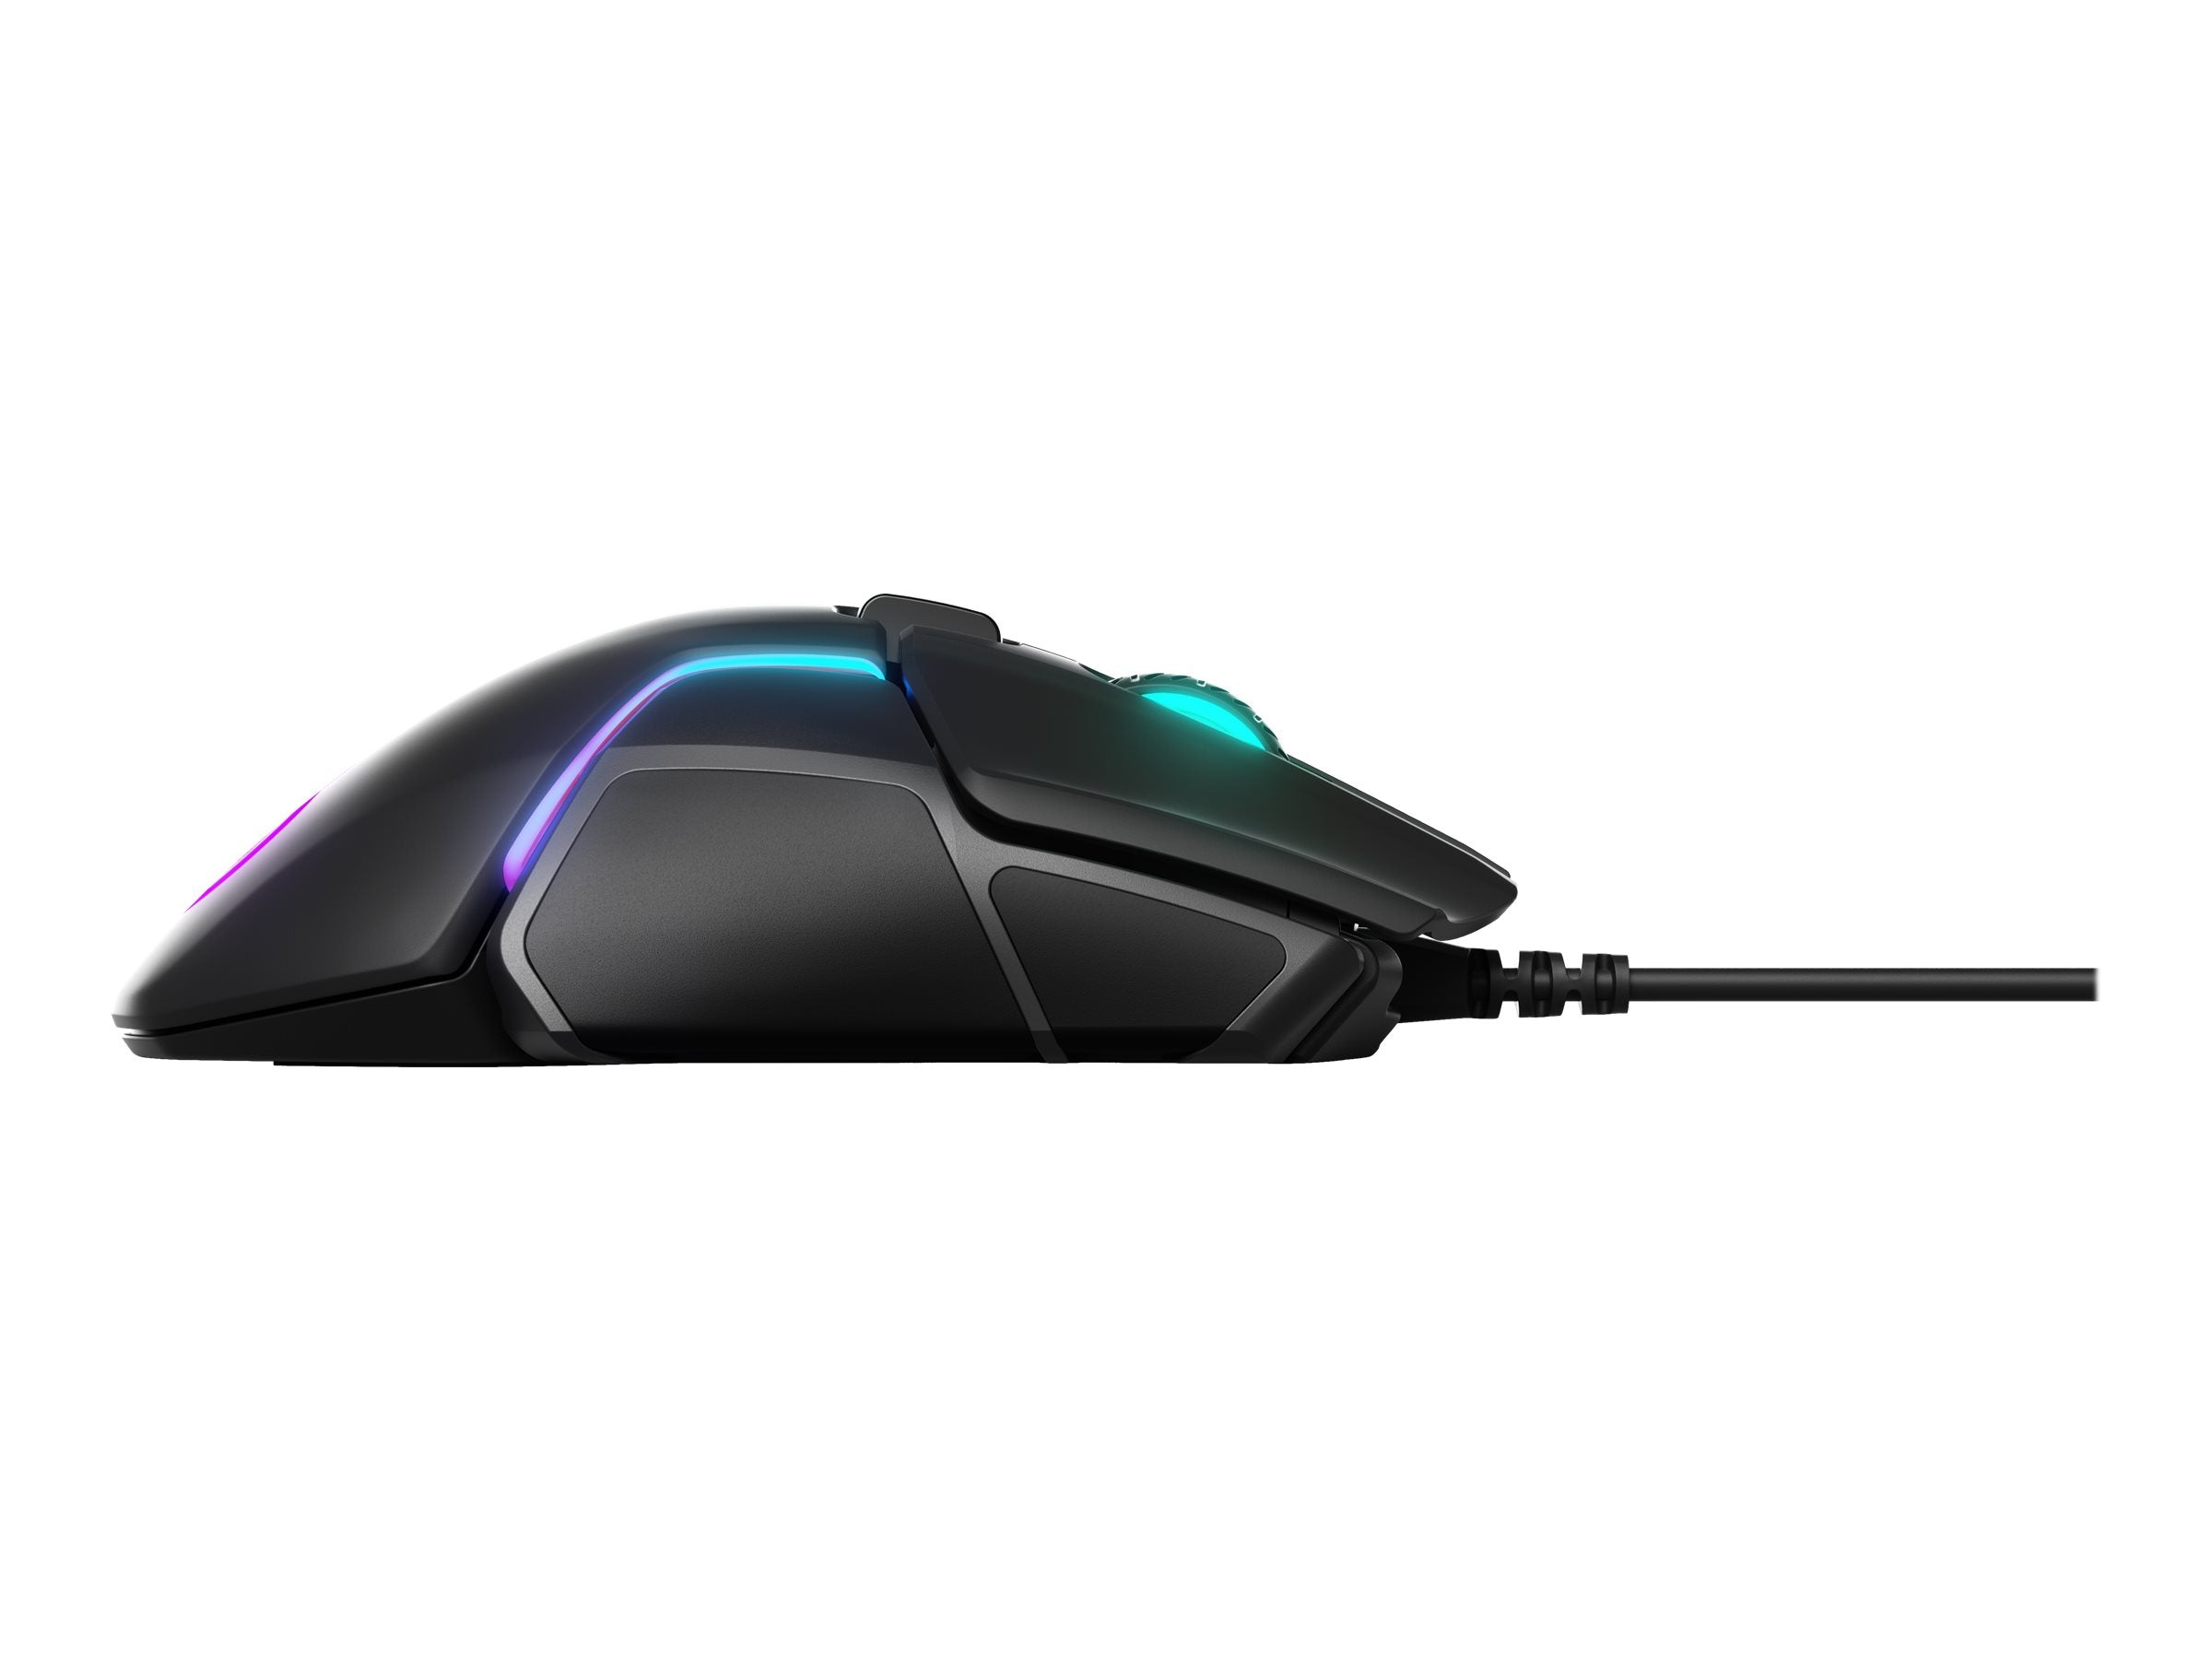 Gamer Mus SteelSeries Rival 600 Optisk Kabling Sort